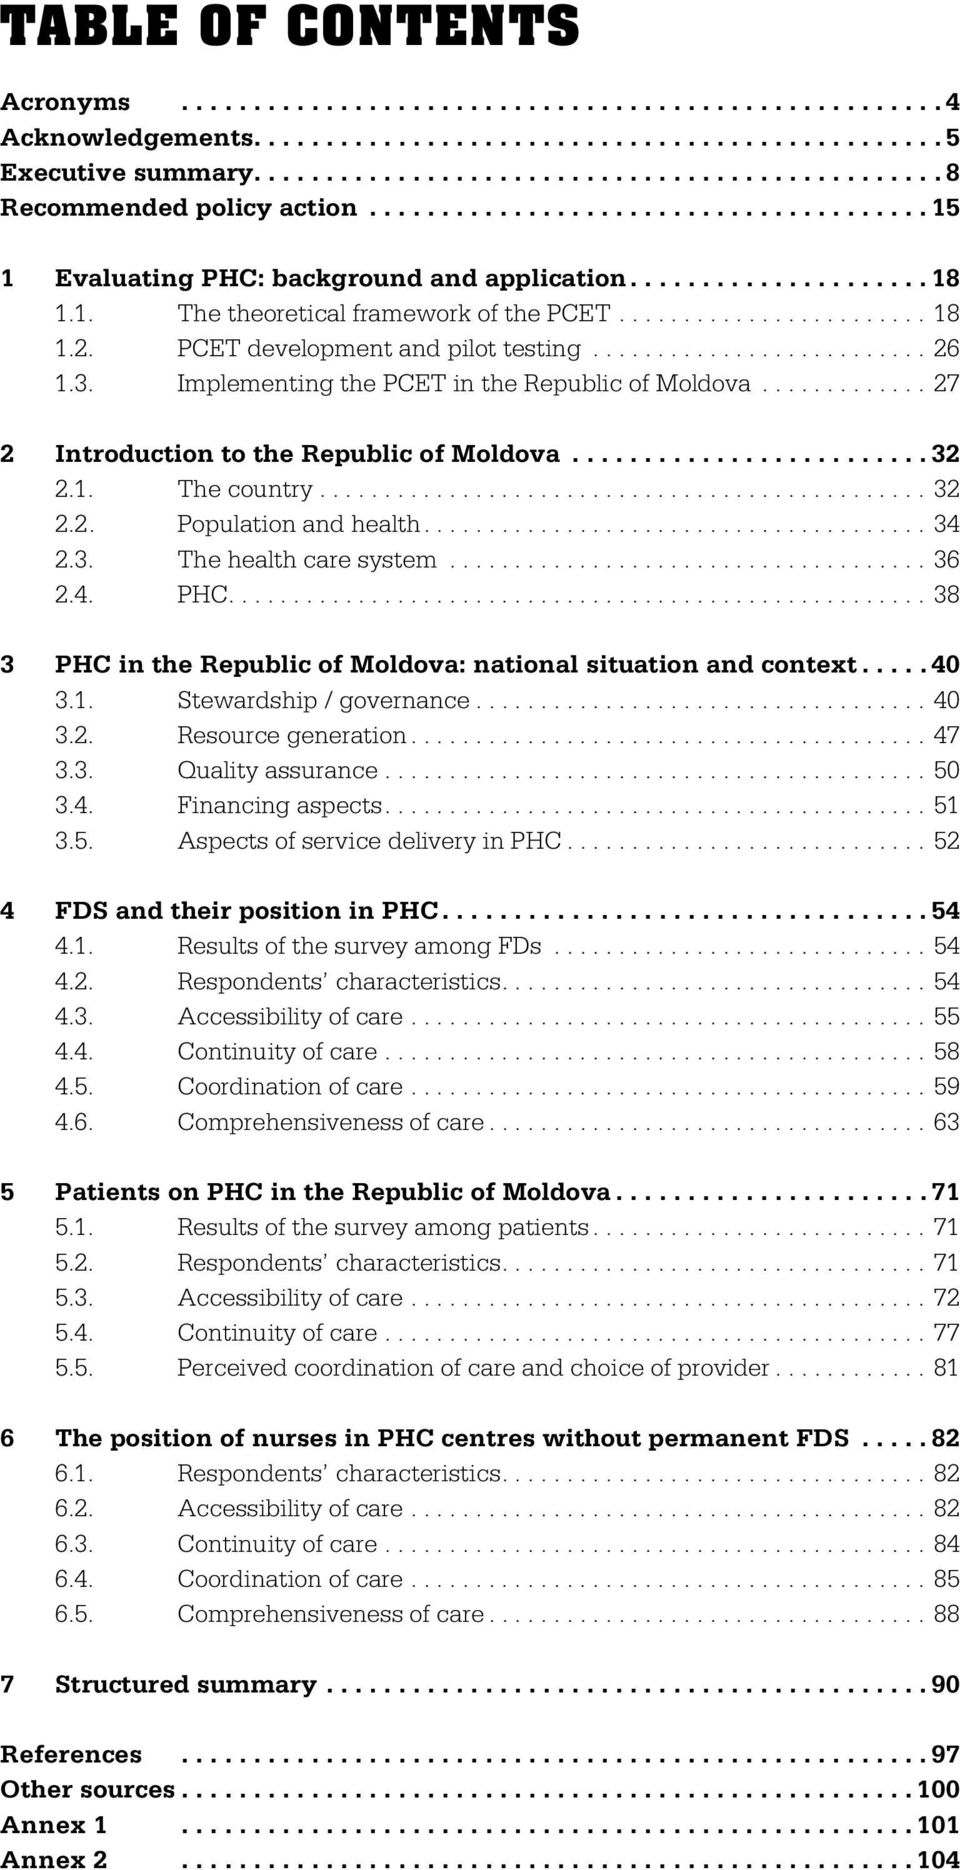 ...34 2.3. The health care system...36 2.4. PHC....38 3 PHC in the Republic of Moldova: national situation and context... 40 3.1. Stewardship / governance...40 3.2. Resource generation...47 3.3. Quality assurance.